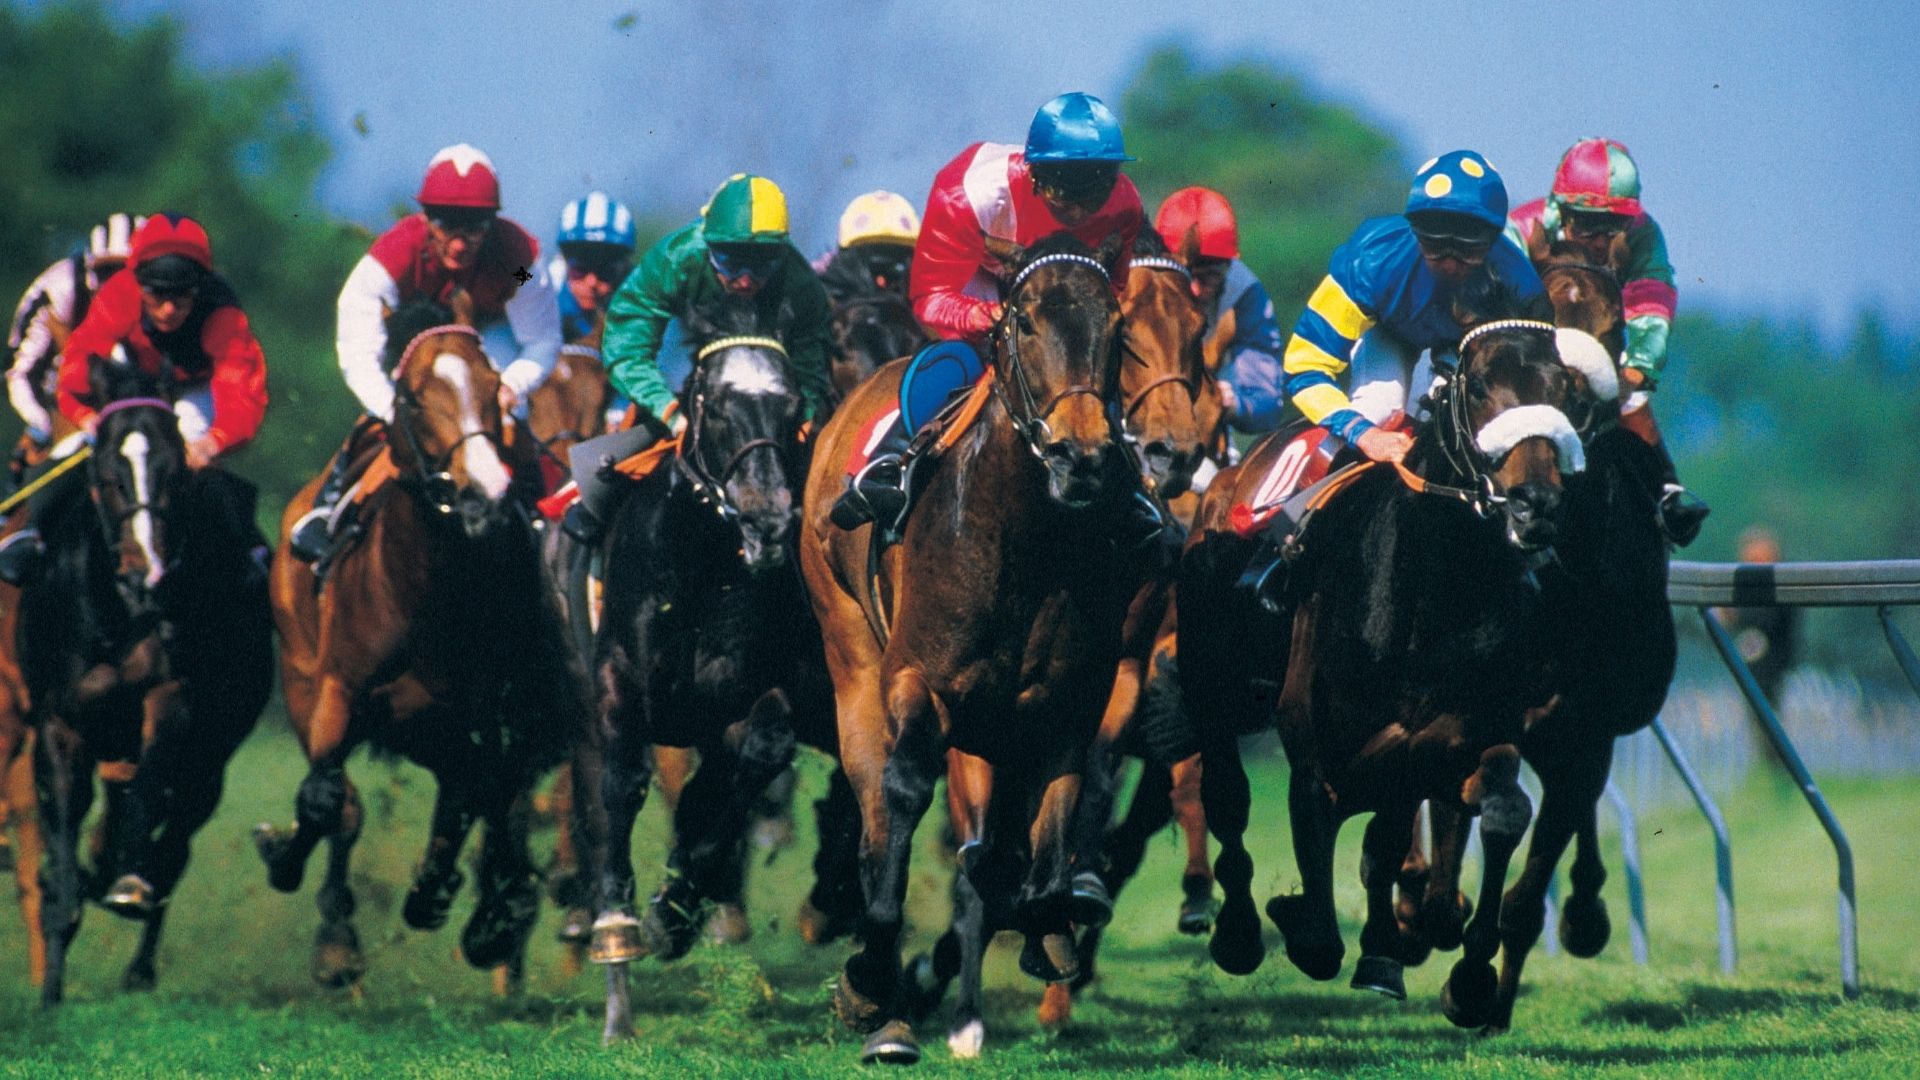 Picture of horses during a race.